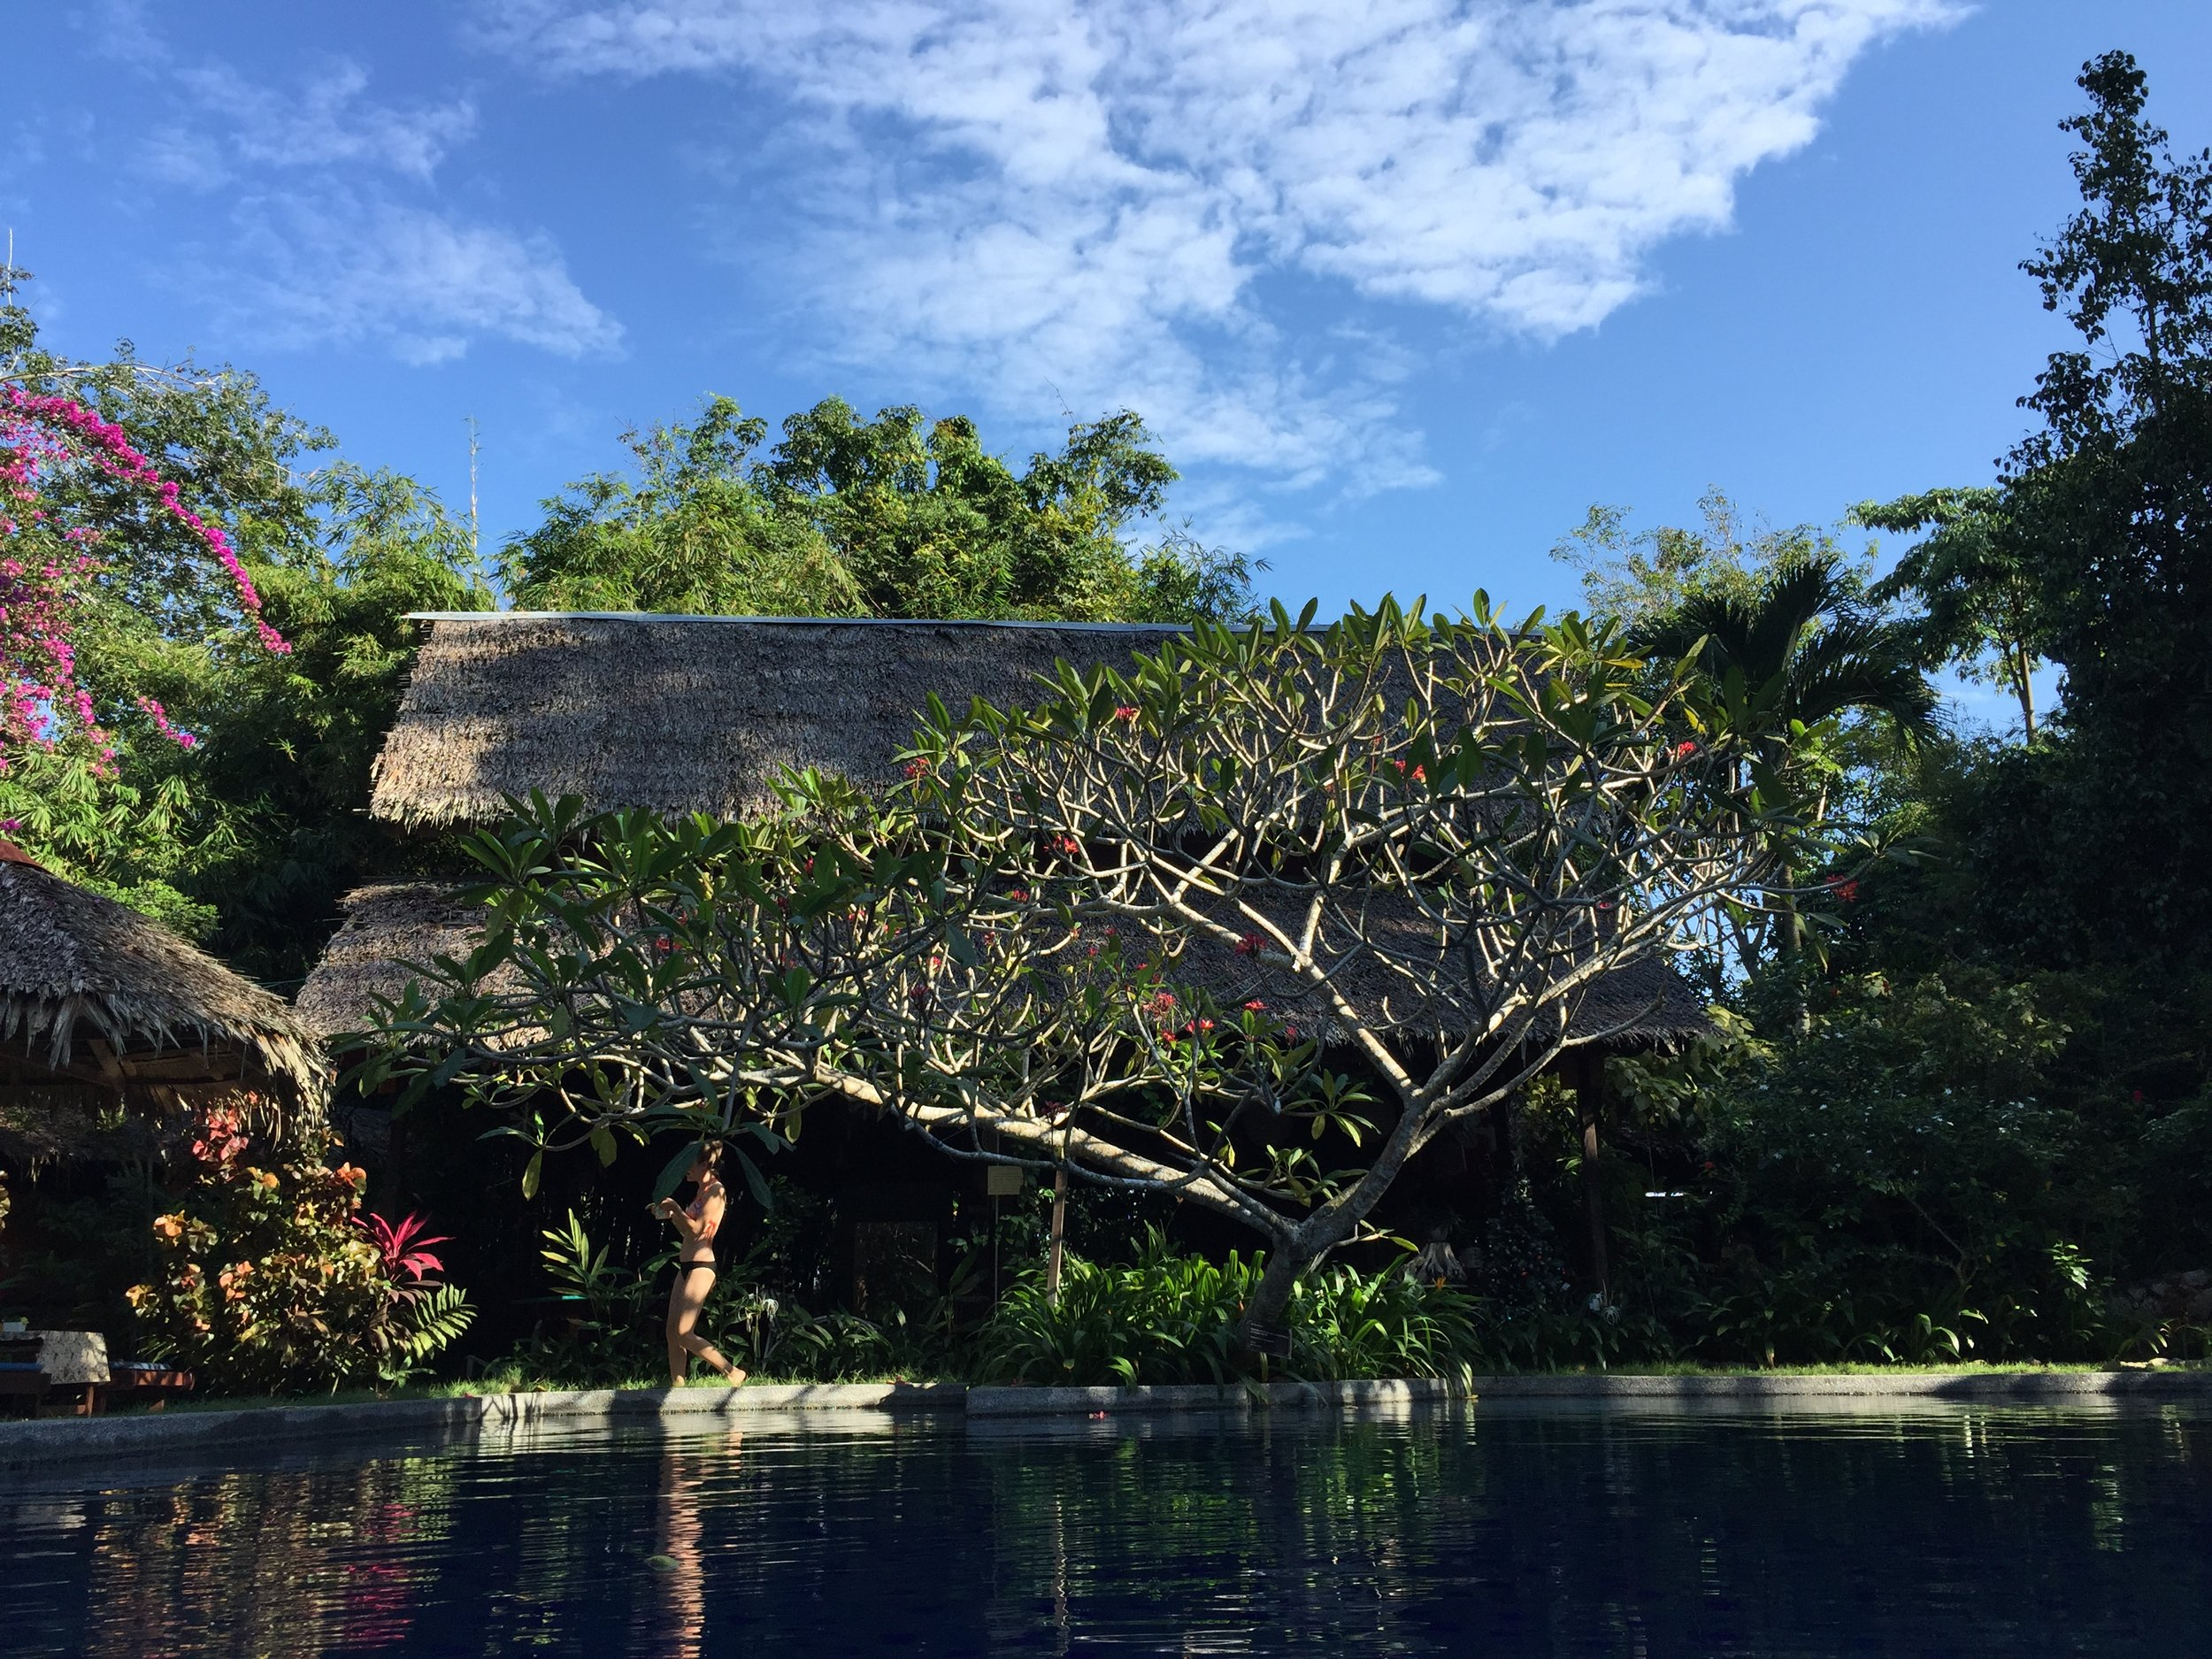 Blue sky means relaxing poolside at Tiger Rock